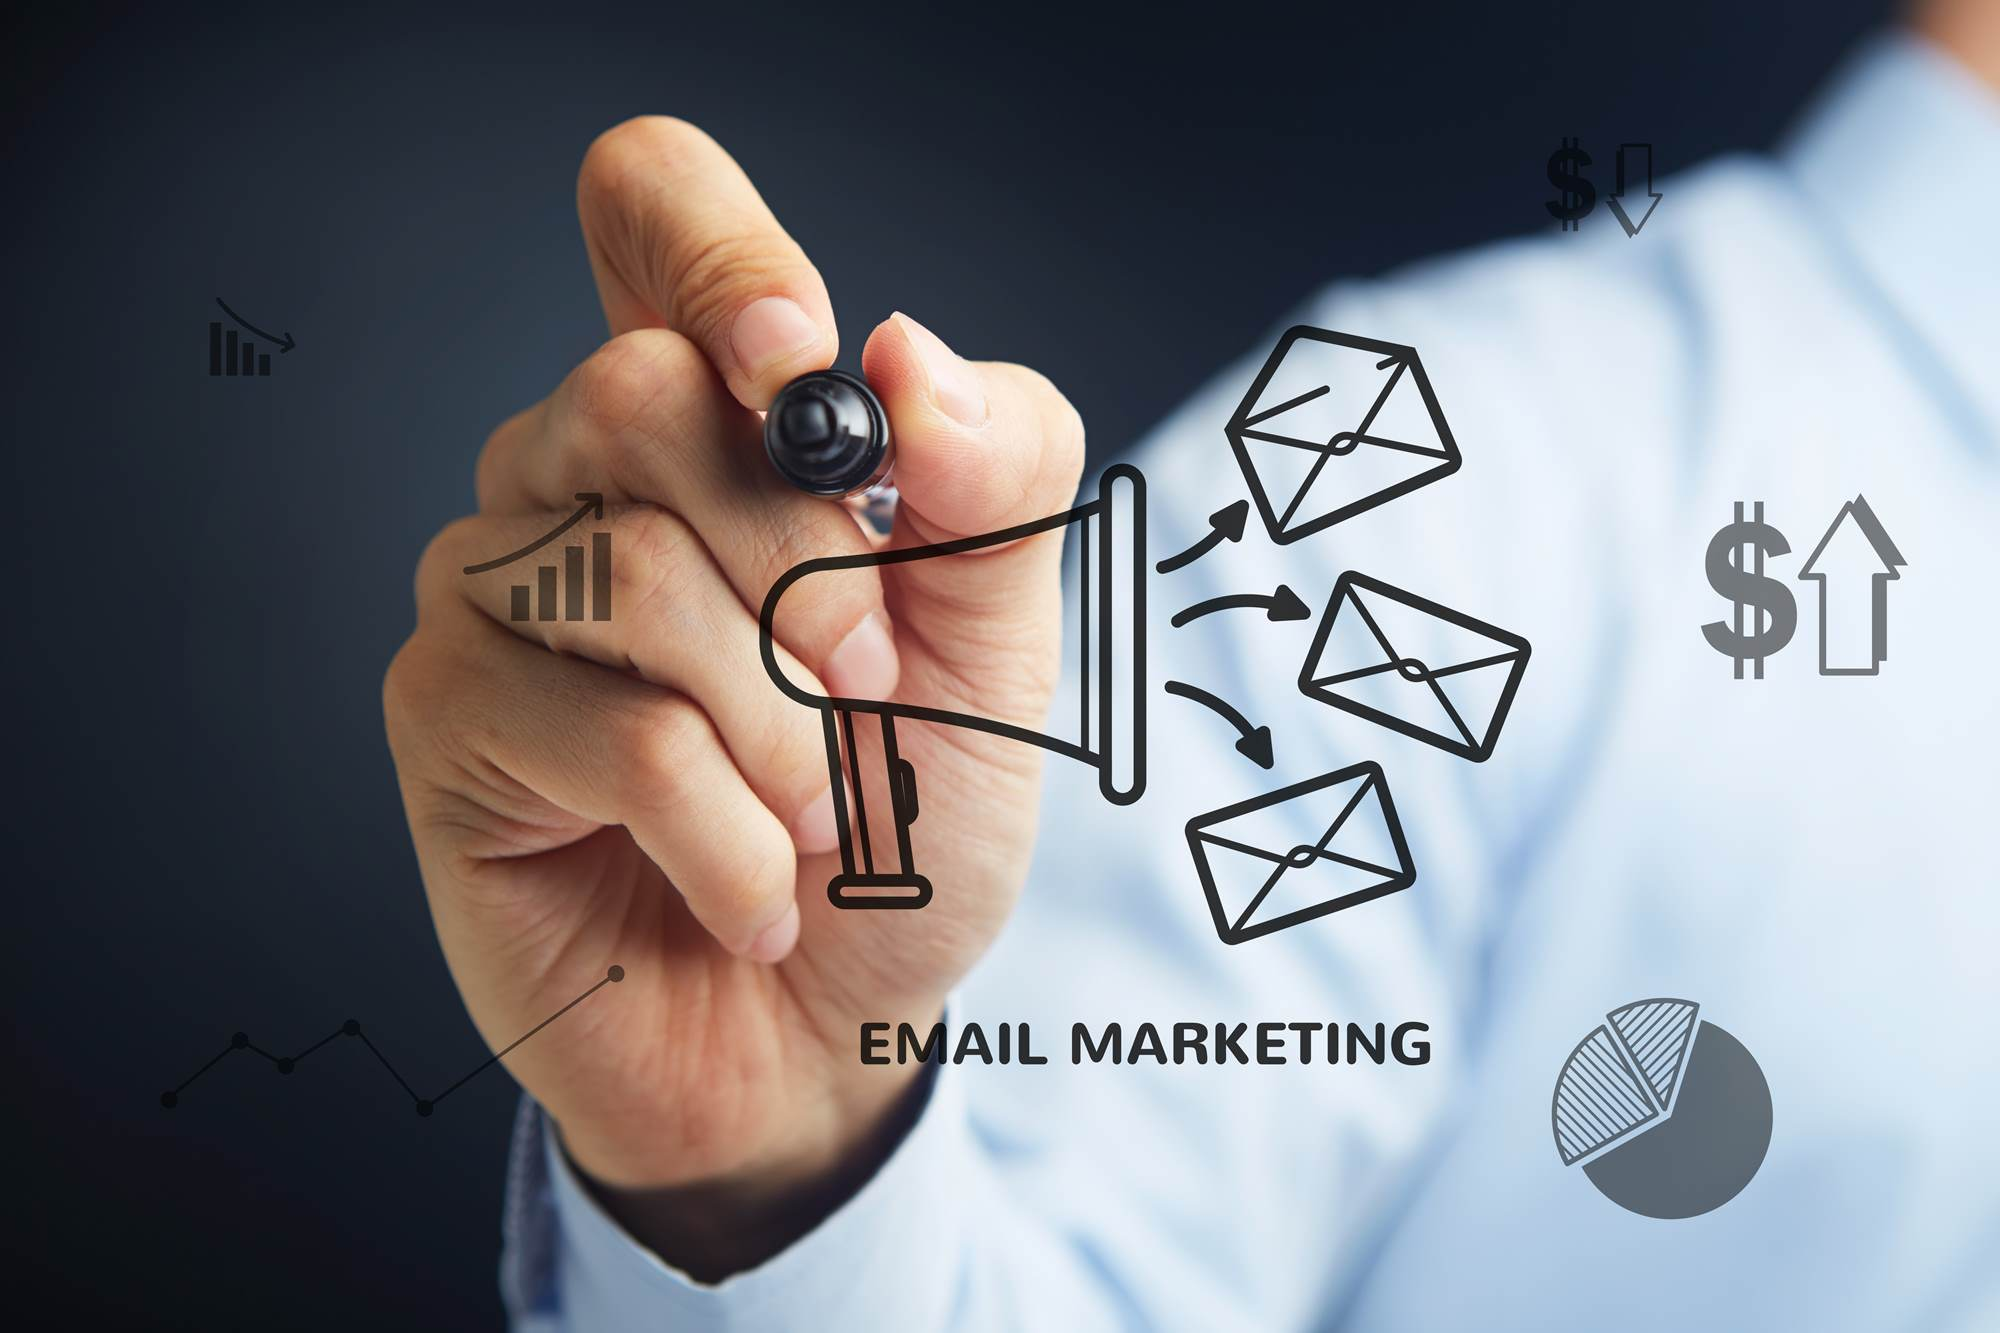 How To Increase Customer Retention With Email